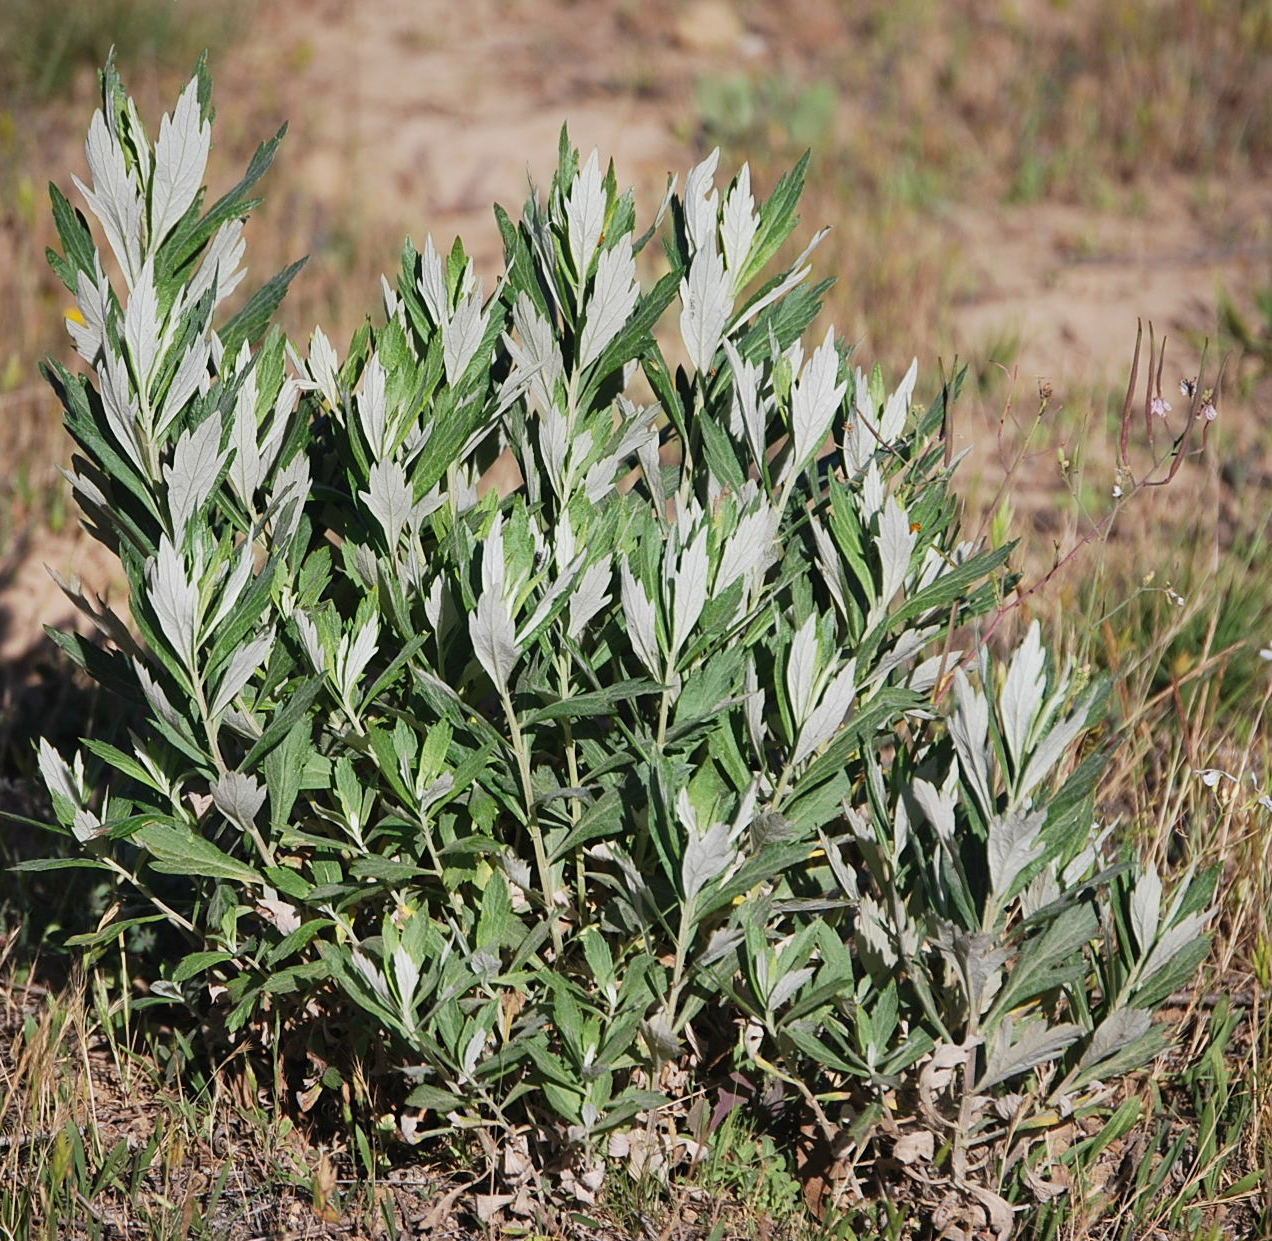 How To Collect Mugwort Seeds for Dummies